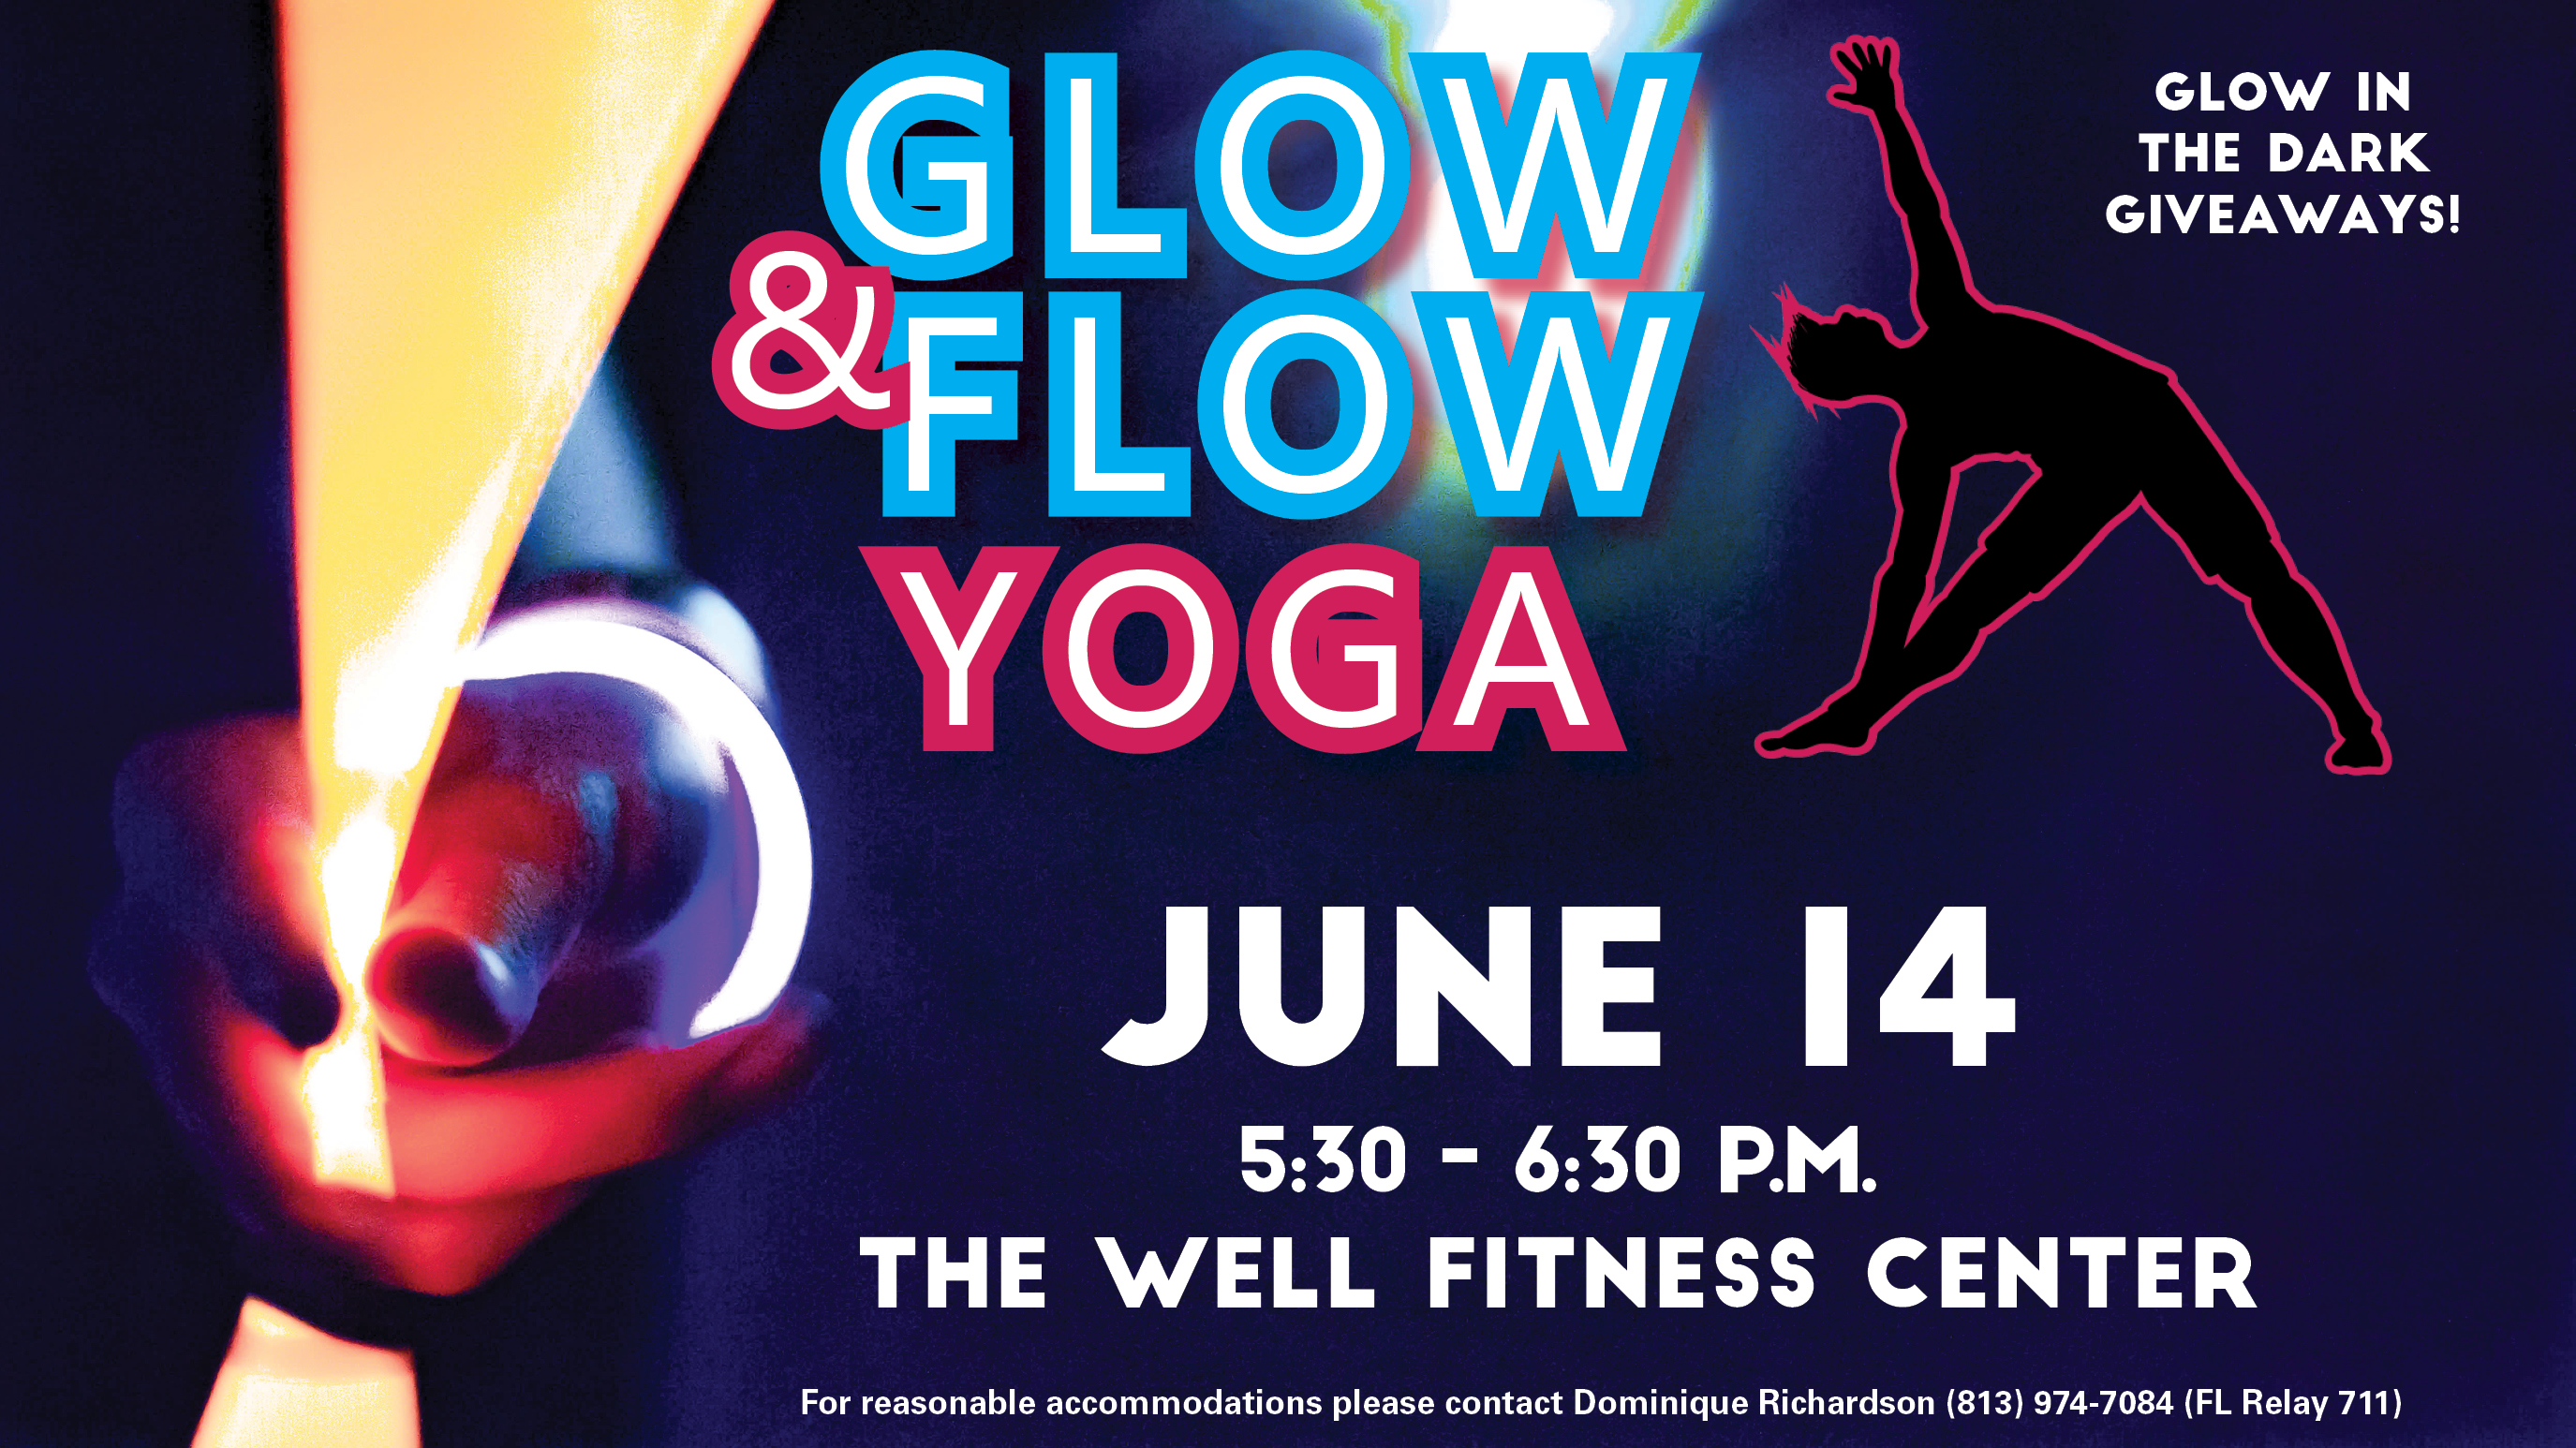 Glow and Flow Yoga